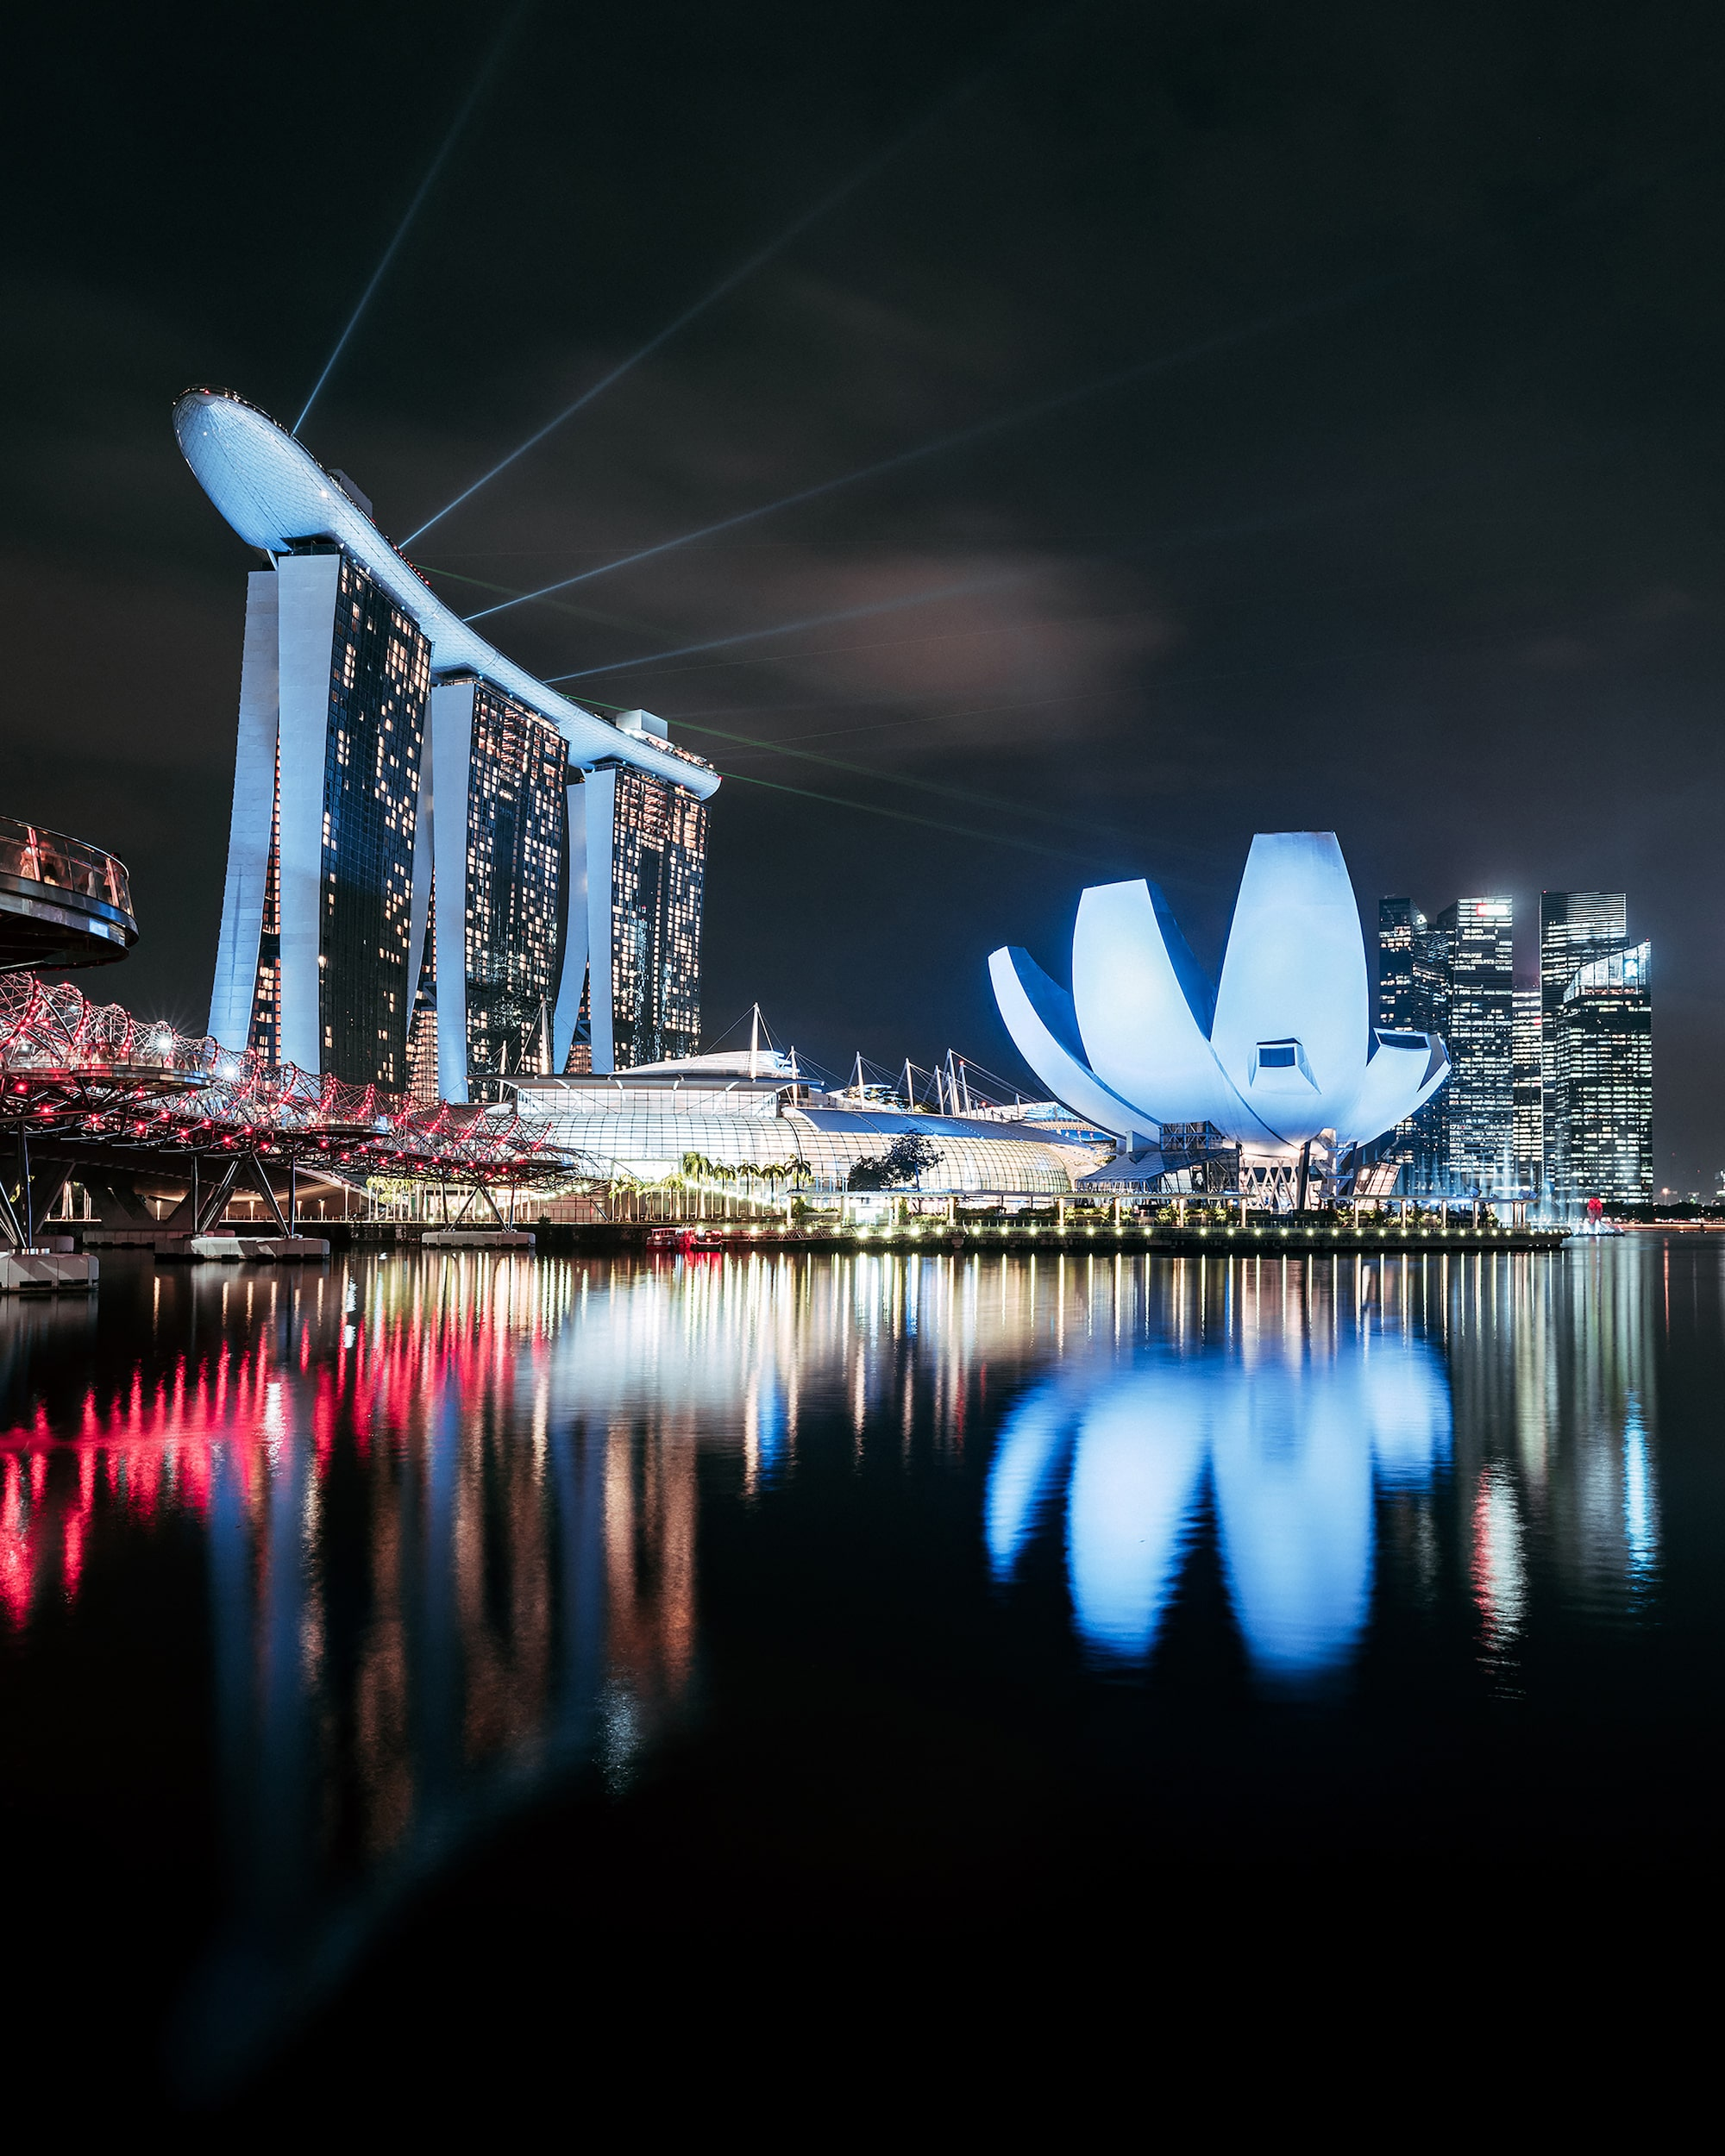 Riverside view of Marina Bay Sands area at night